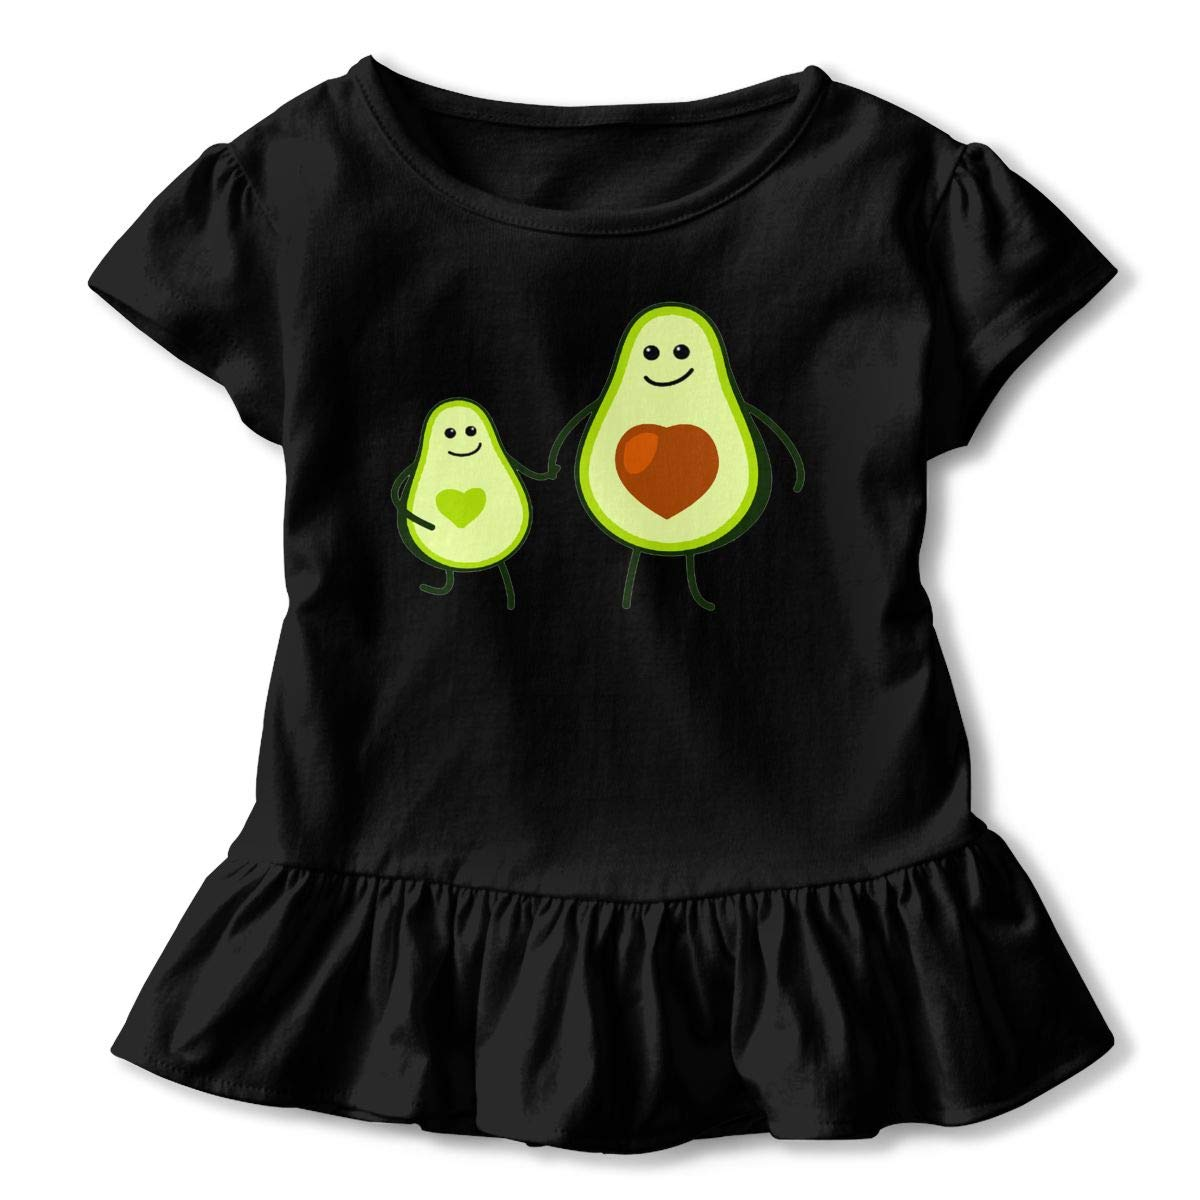 Avocado Kid and Mom Toddler Baby Girls Cotton Ruffle Short Sleeve Top Comfortable T-Shirt 2-6T